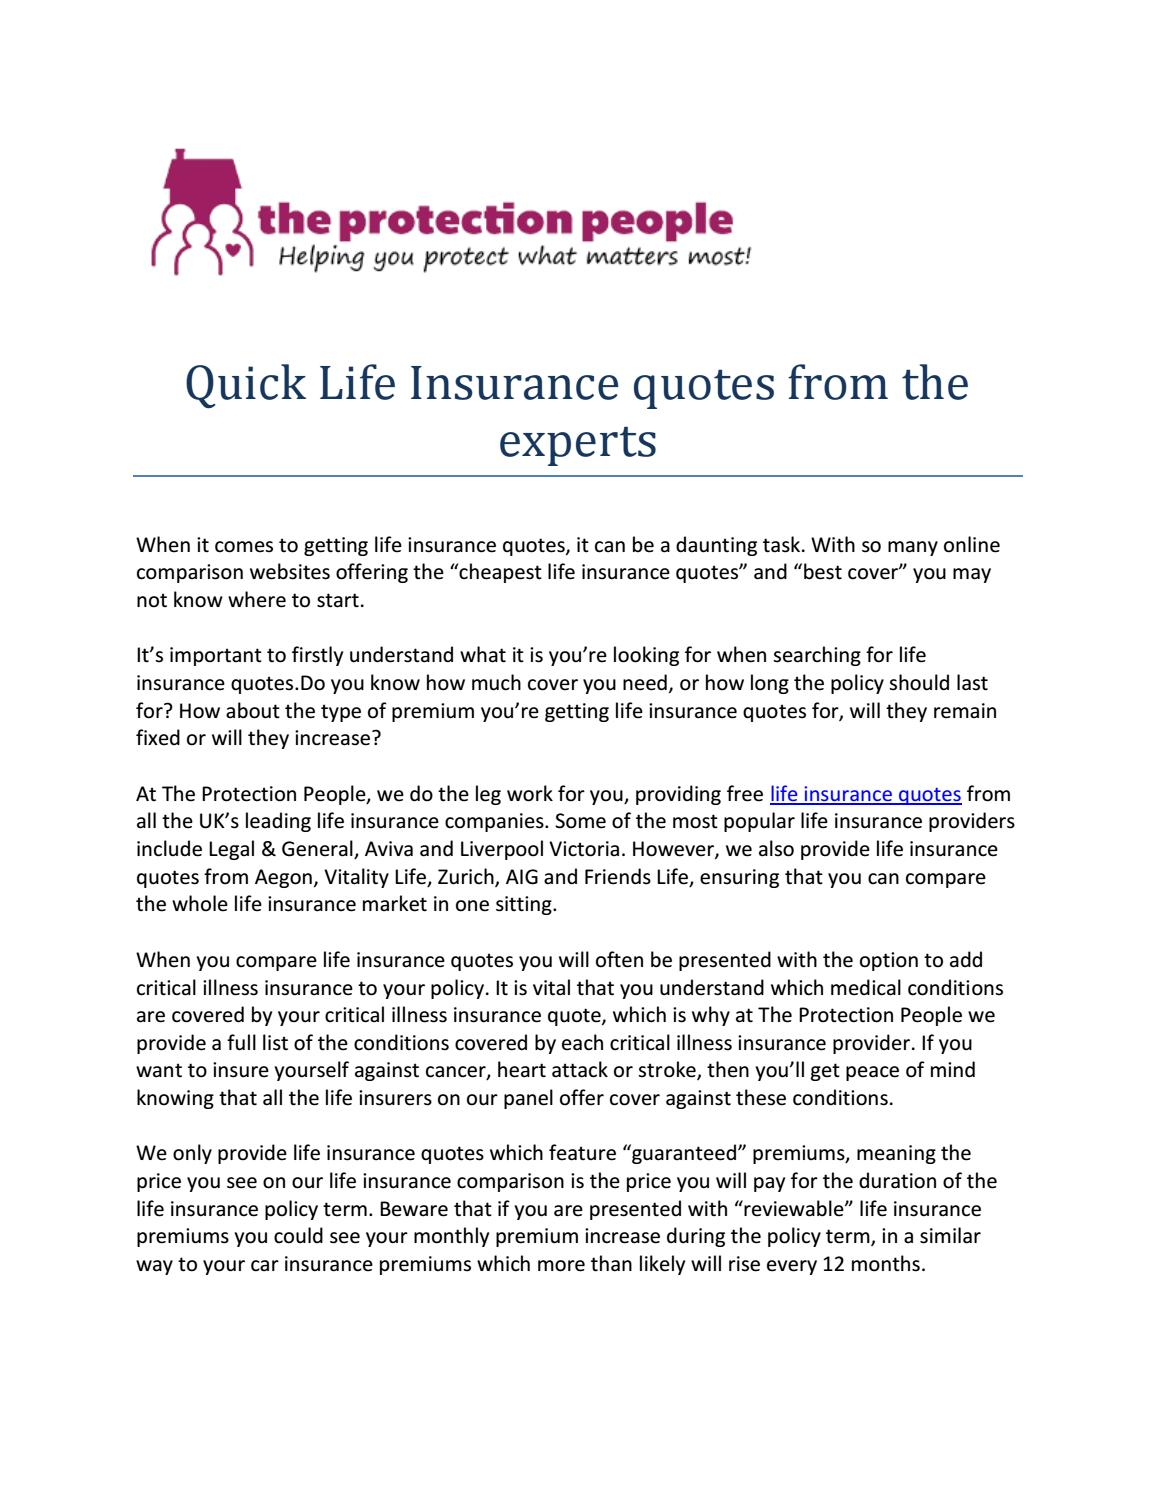 Zurich Life Insurance Quote The Protection People  Quick Life Insurance Quotes From The